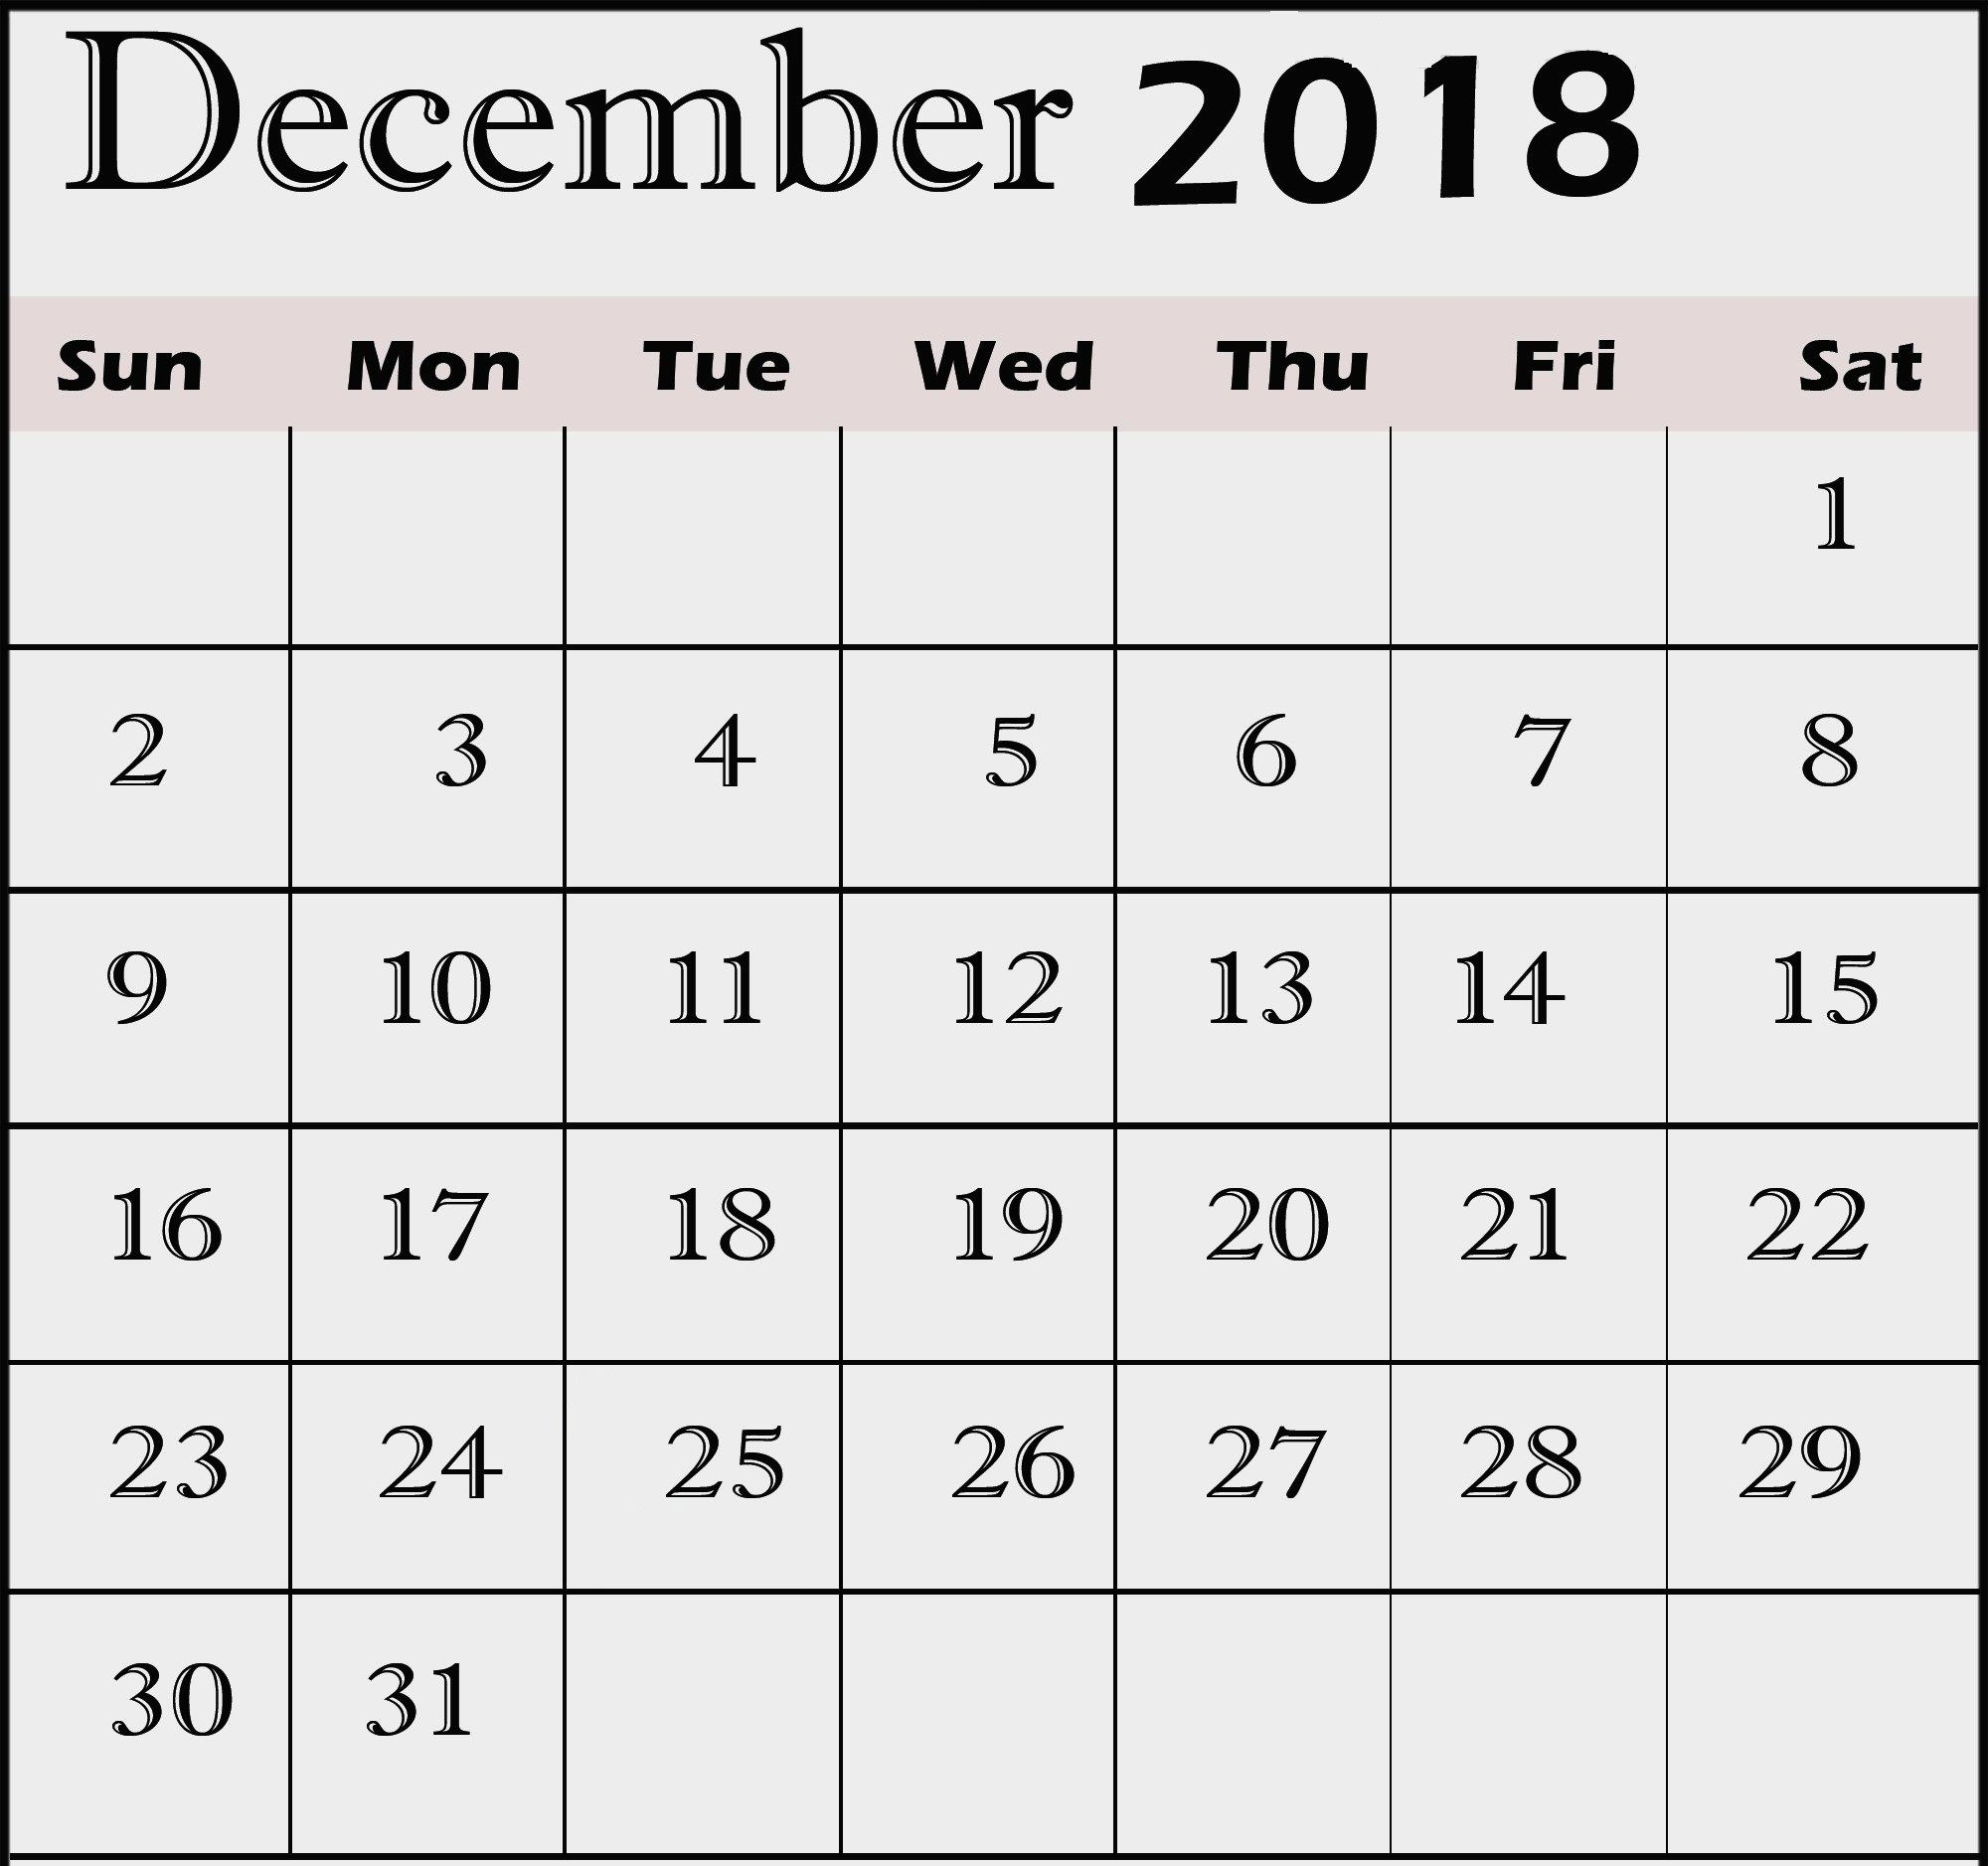 2018 December Calendar With Holidays | Calendar Format Example with regard to November Calendar For Quikcalendertemplate